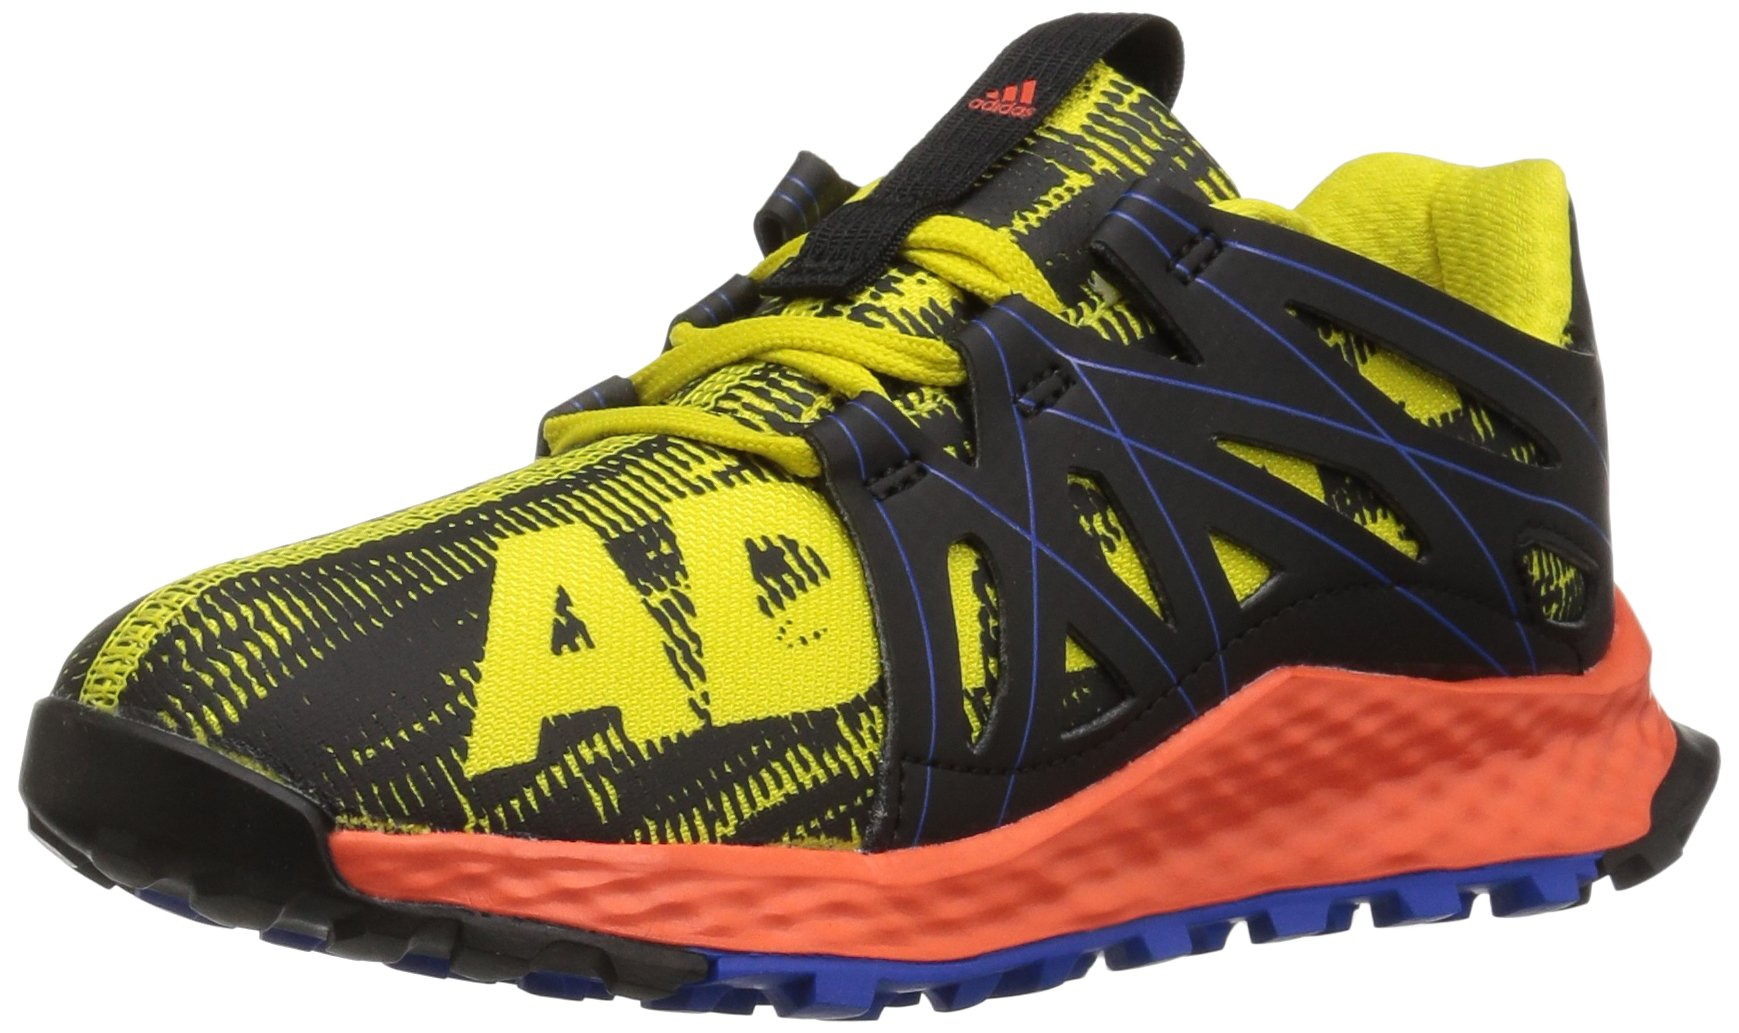 daeb0d488dd52 Galleon - Adidas Performance Boys  Vigor Bounce C Trail Runner ...